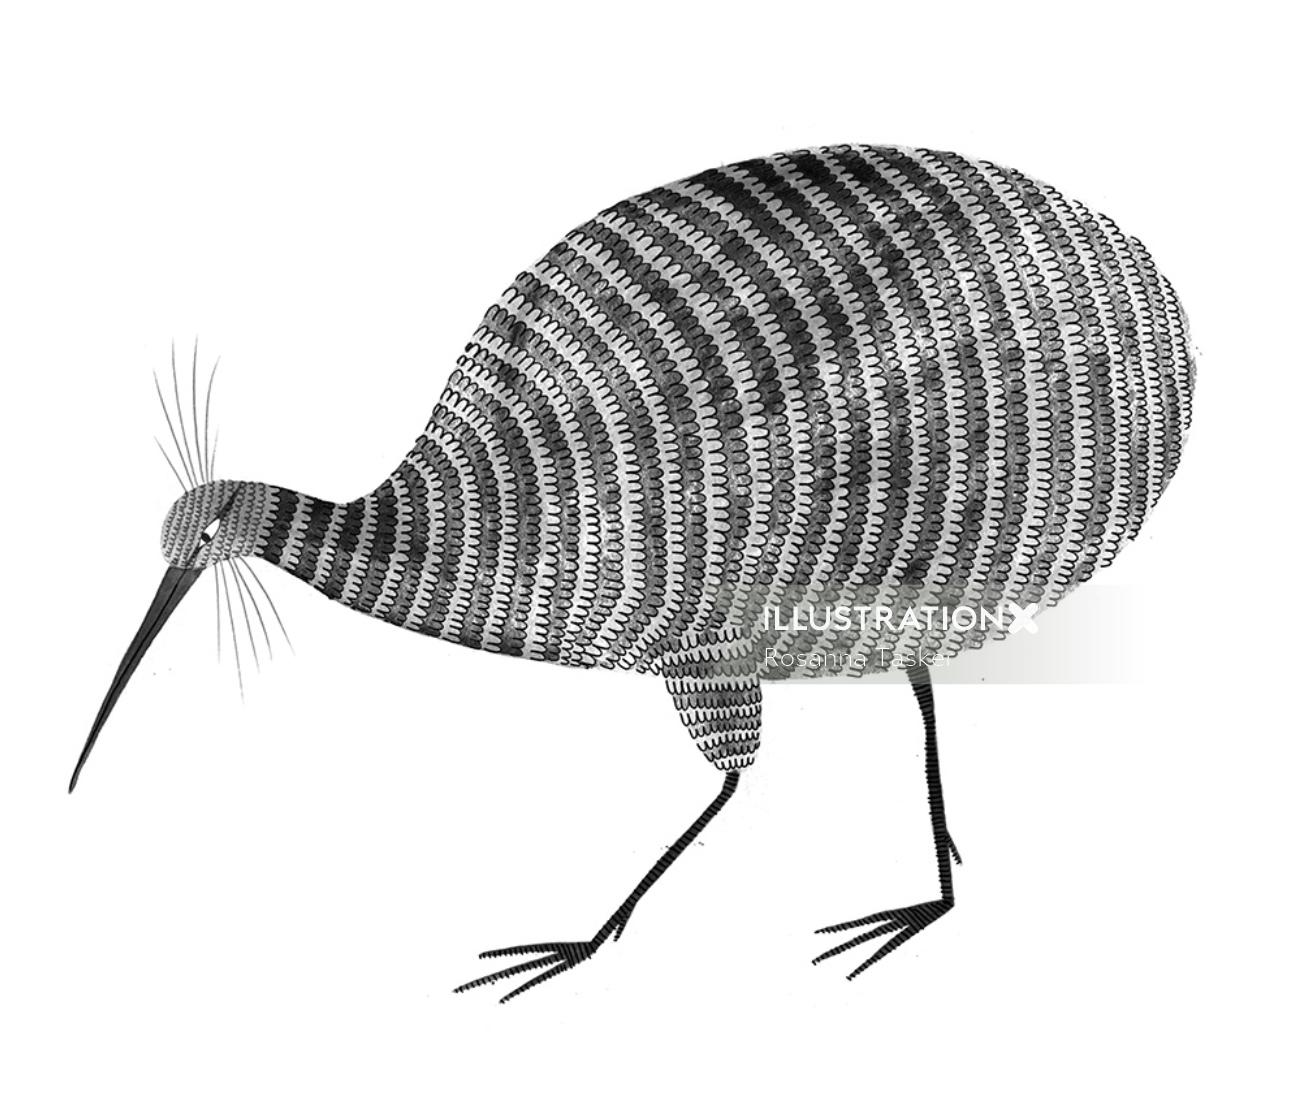 Kiwi bird drawing by Rosanna Tasker